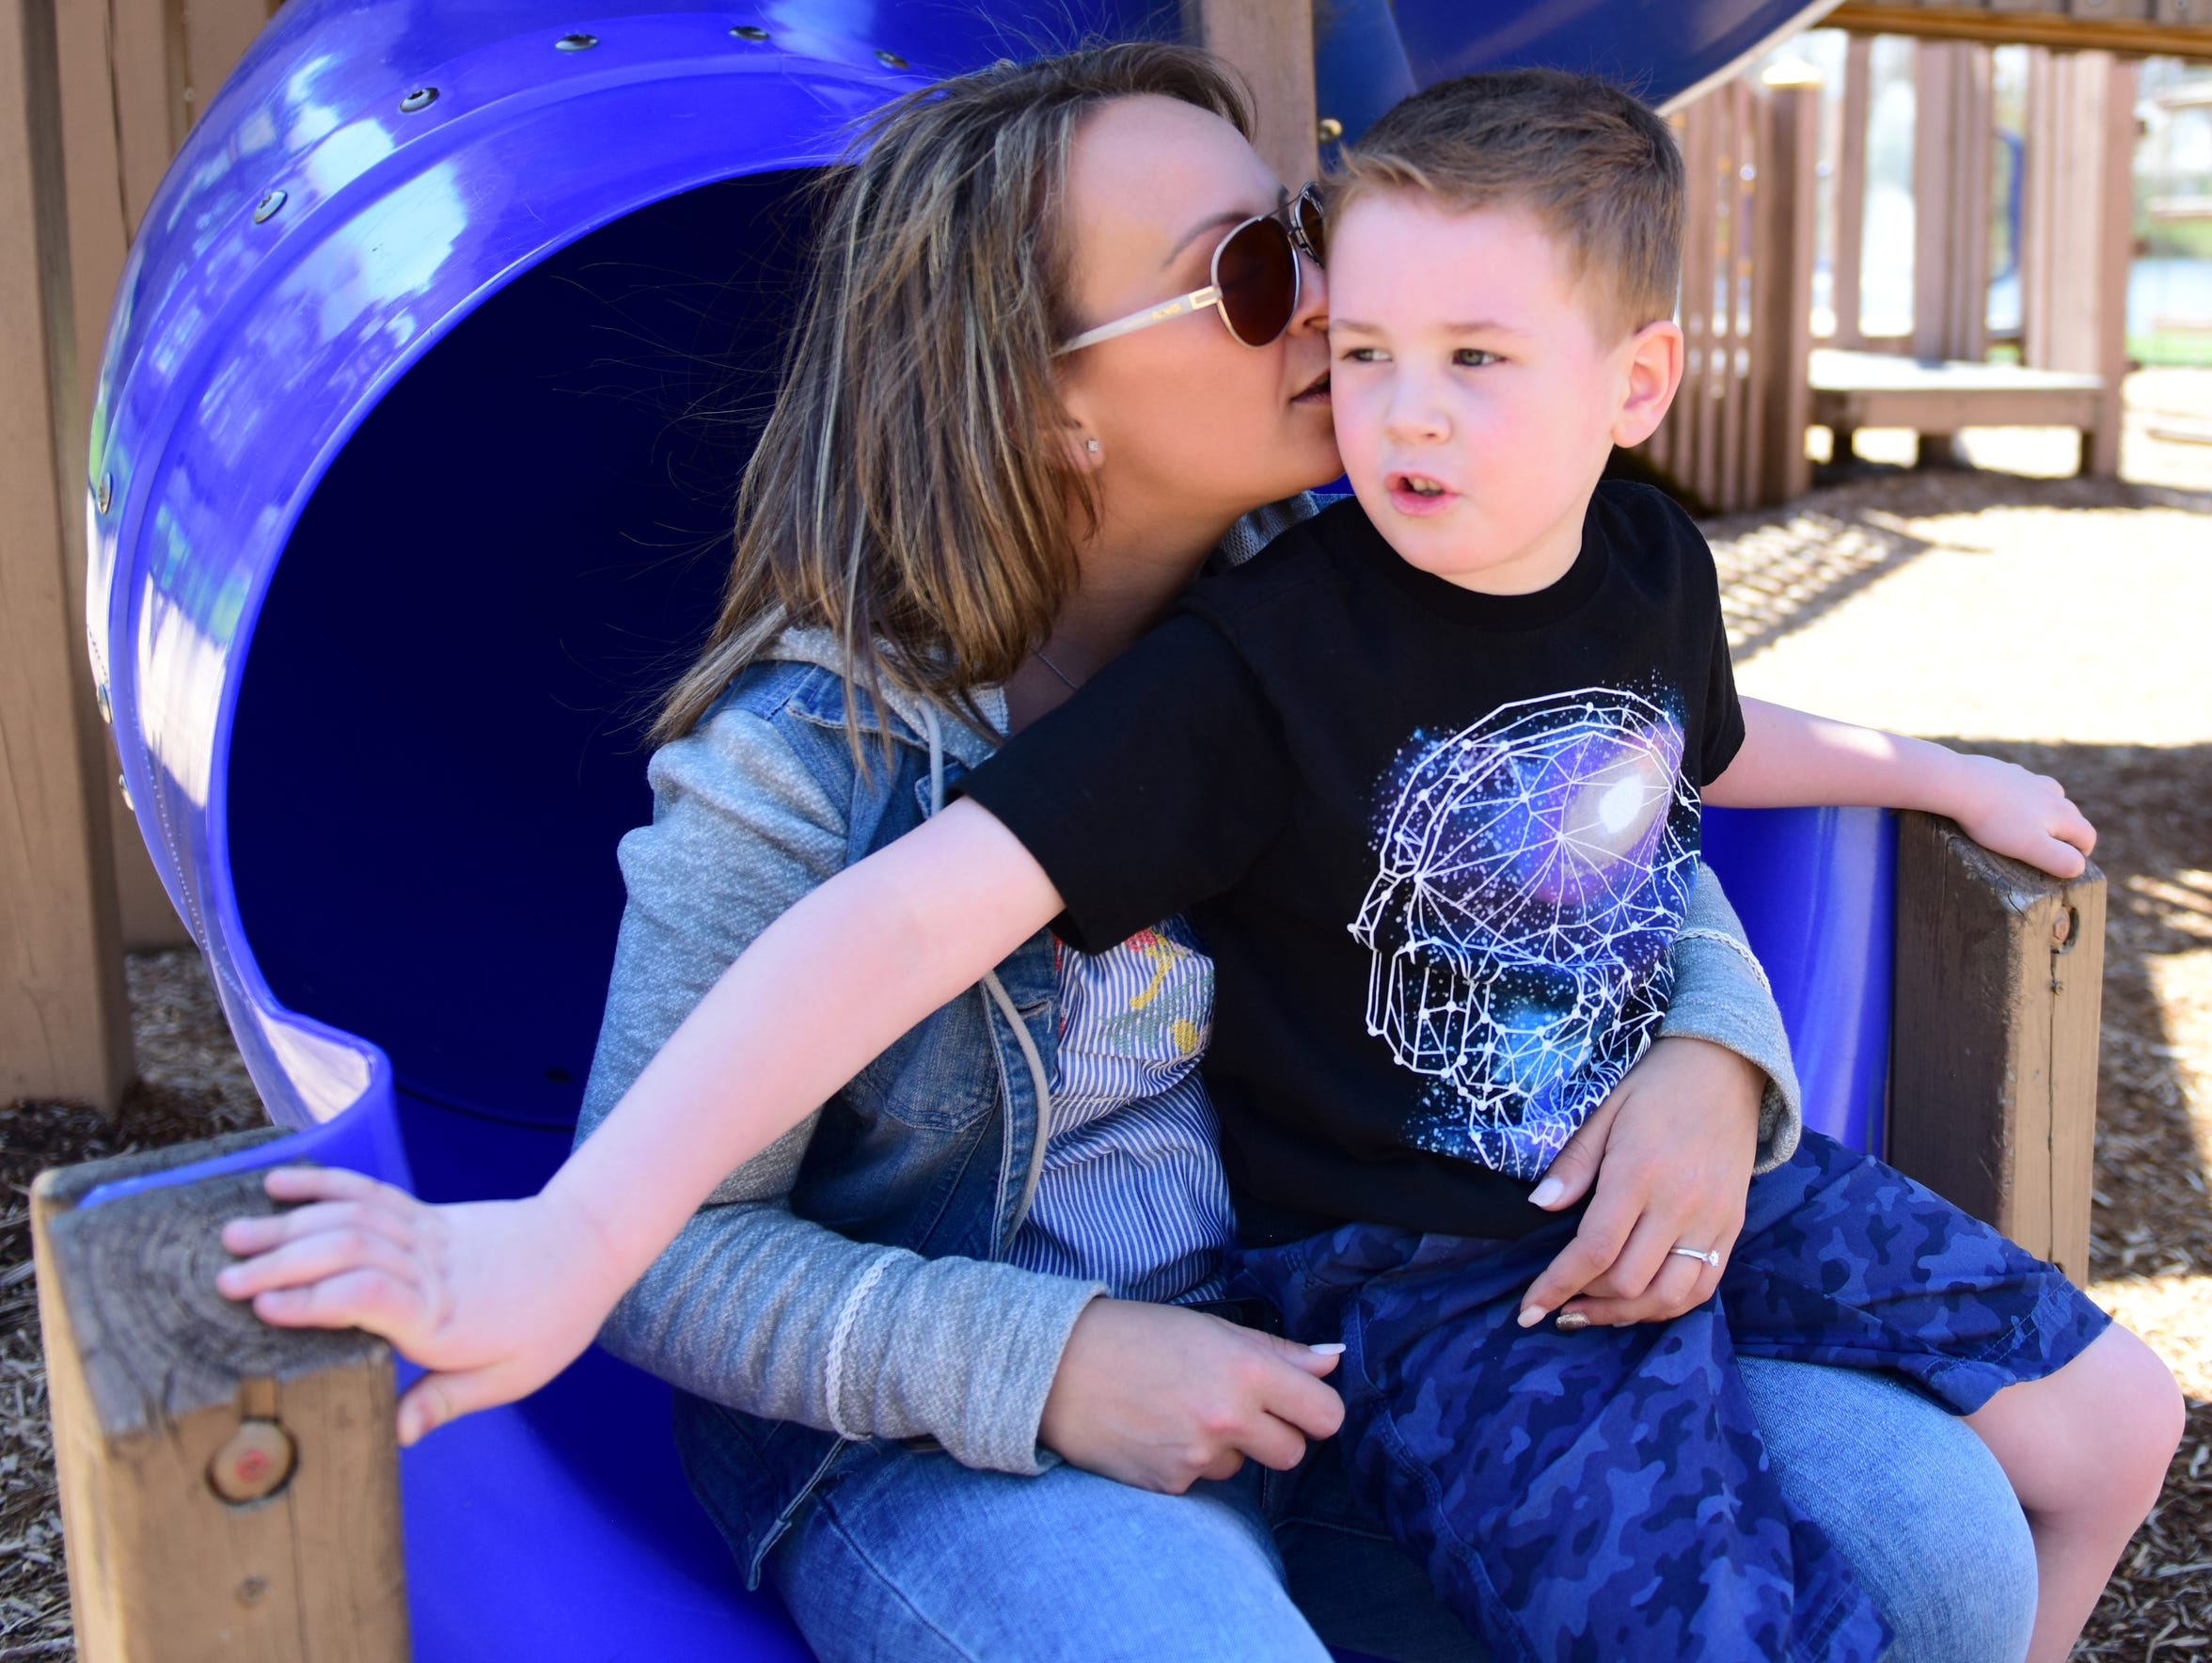 Amanda Zita, 28, plays in the park with her son, Mason,